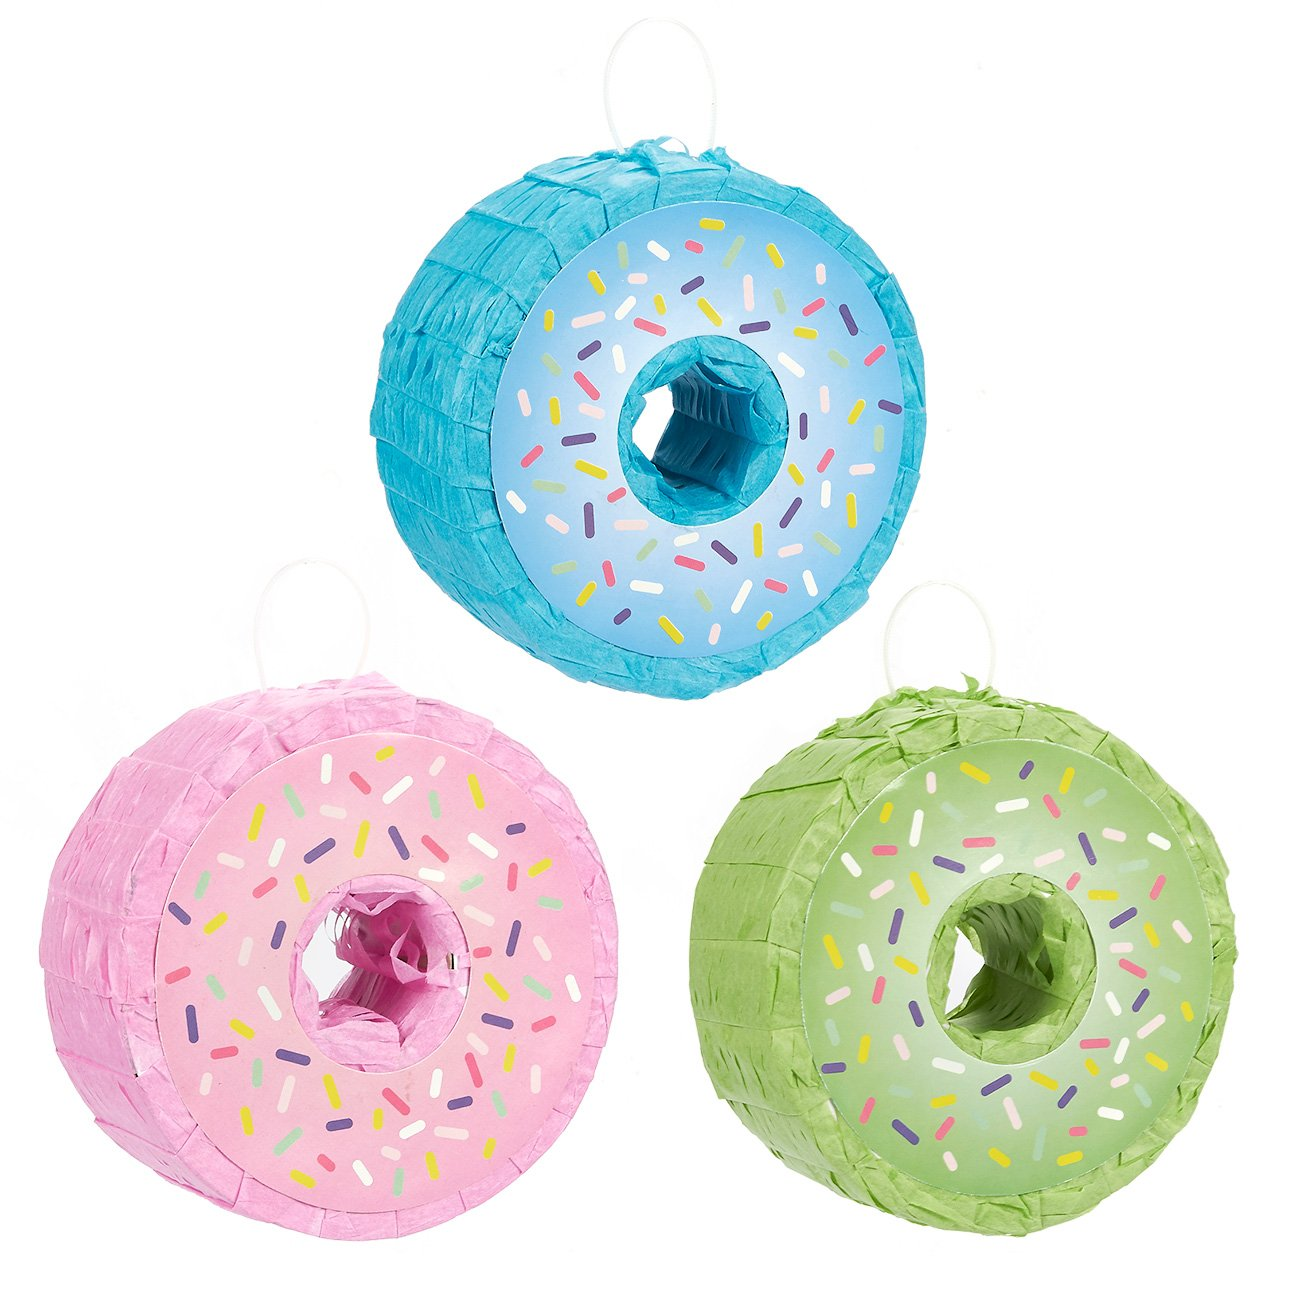 Juvale 3-Pack Mini Donut Pinatas - Party Supplies for Donut Themed Birthday Parties, 4.75 x 4.75 x 2 Inches